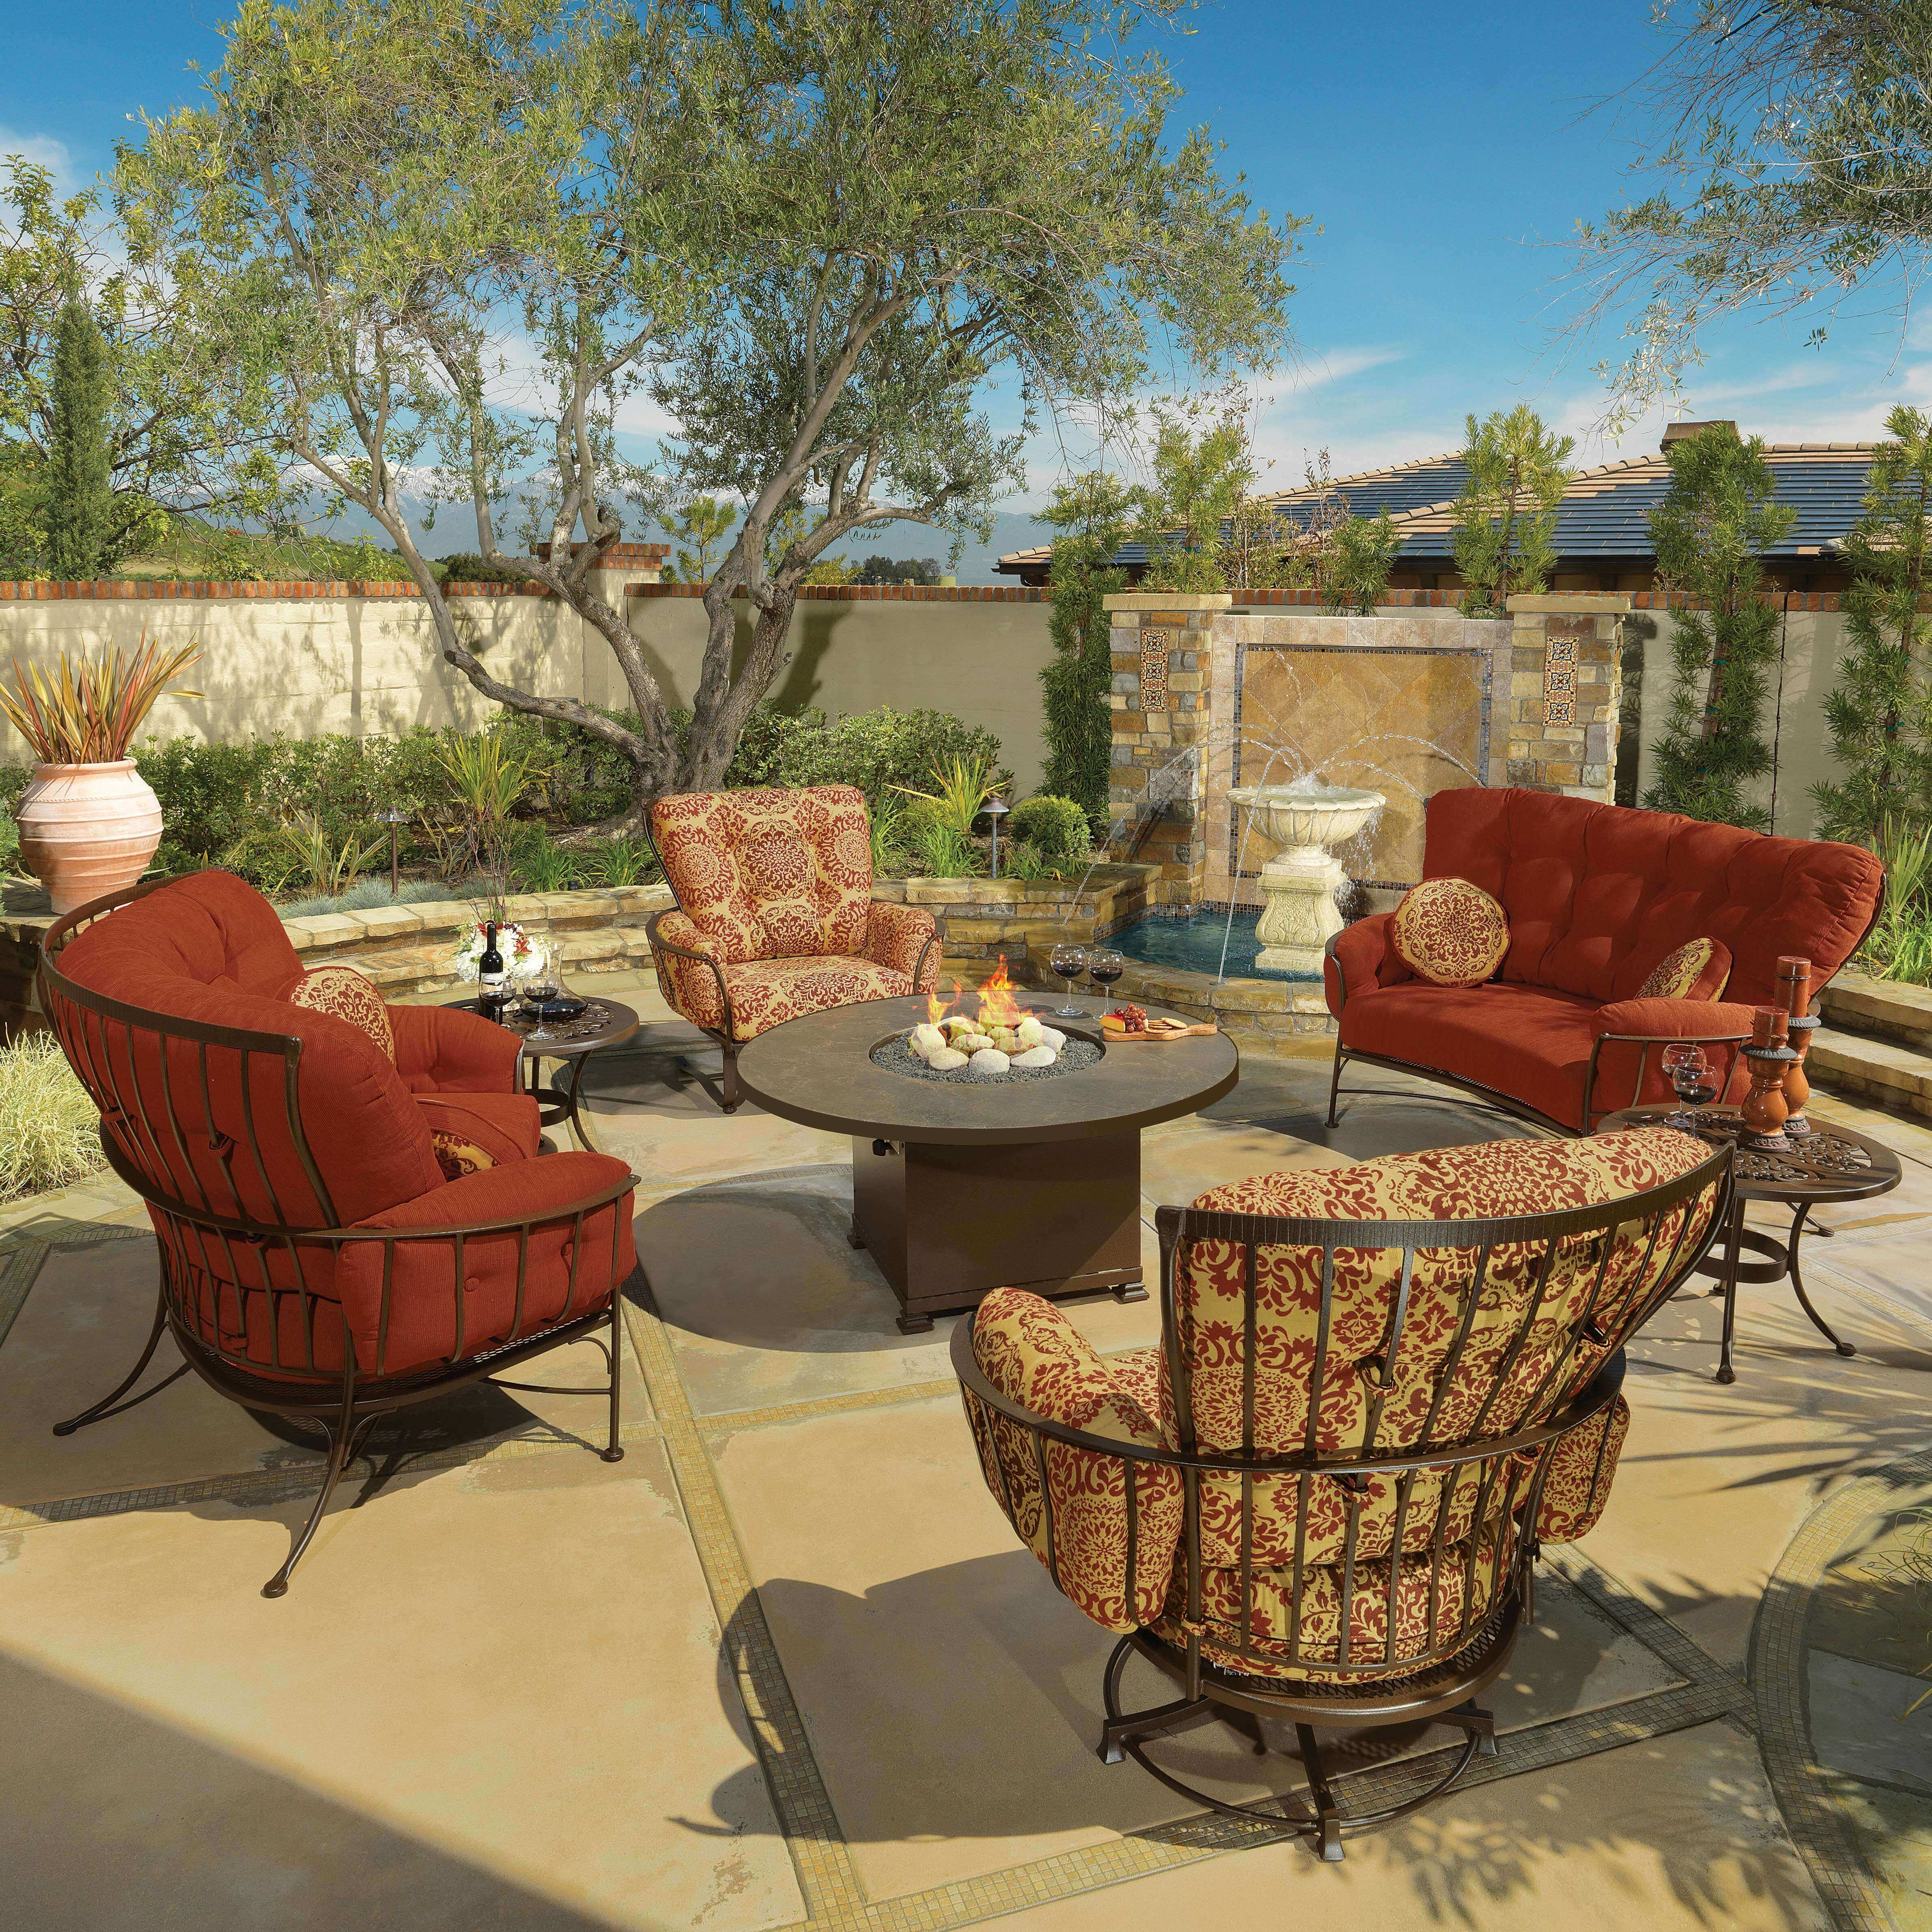 Ow Lee Sunnyland Outdoor Patio Furniture Dallas Fort